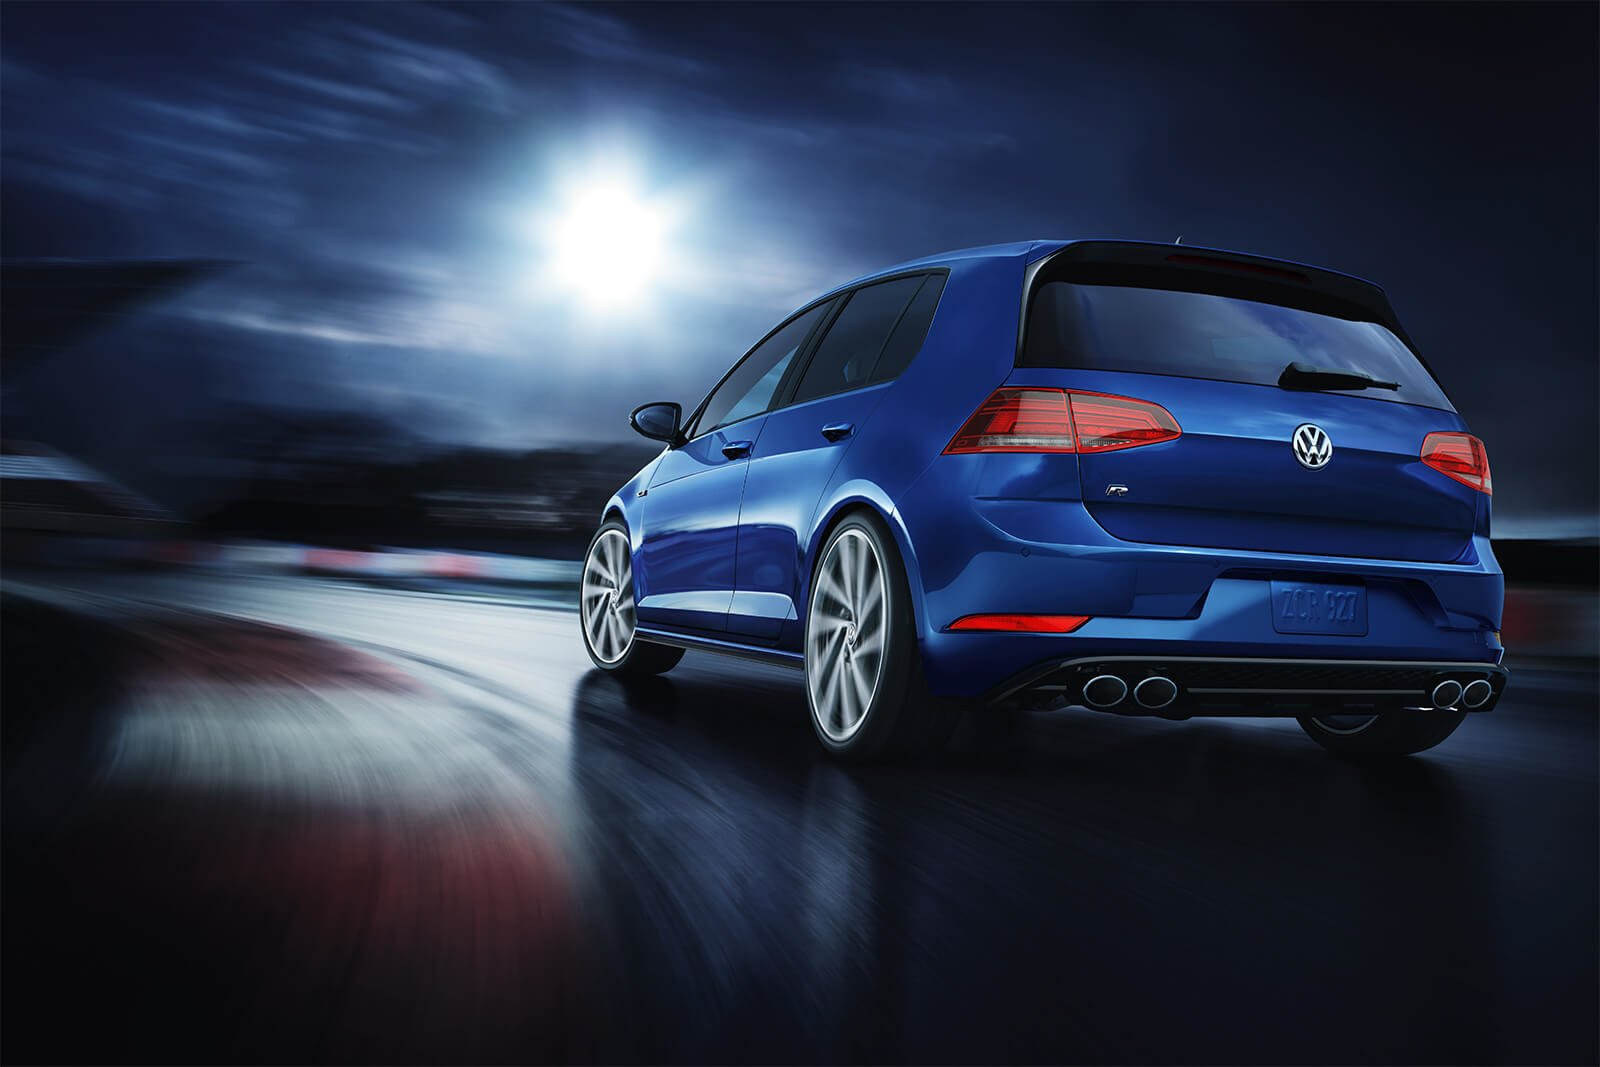 Clear Lake Vw >> Vw Golf R Deals Offers Prices Houston Tx